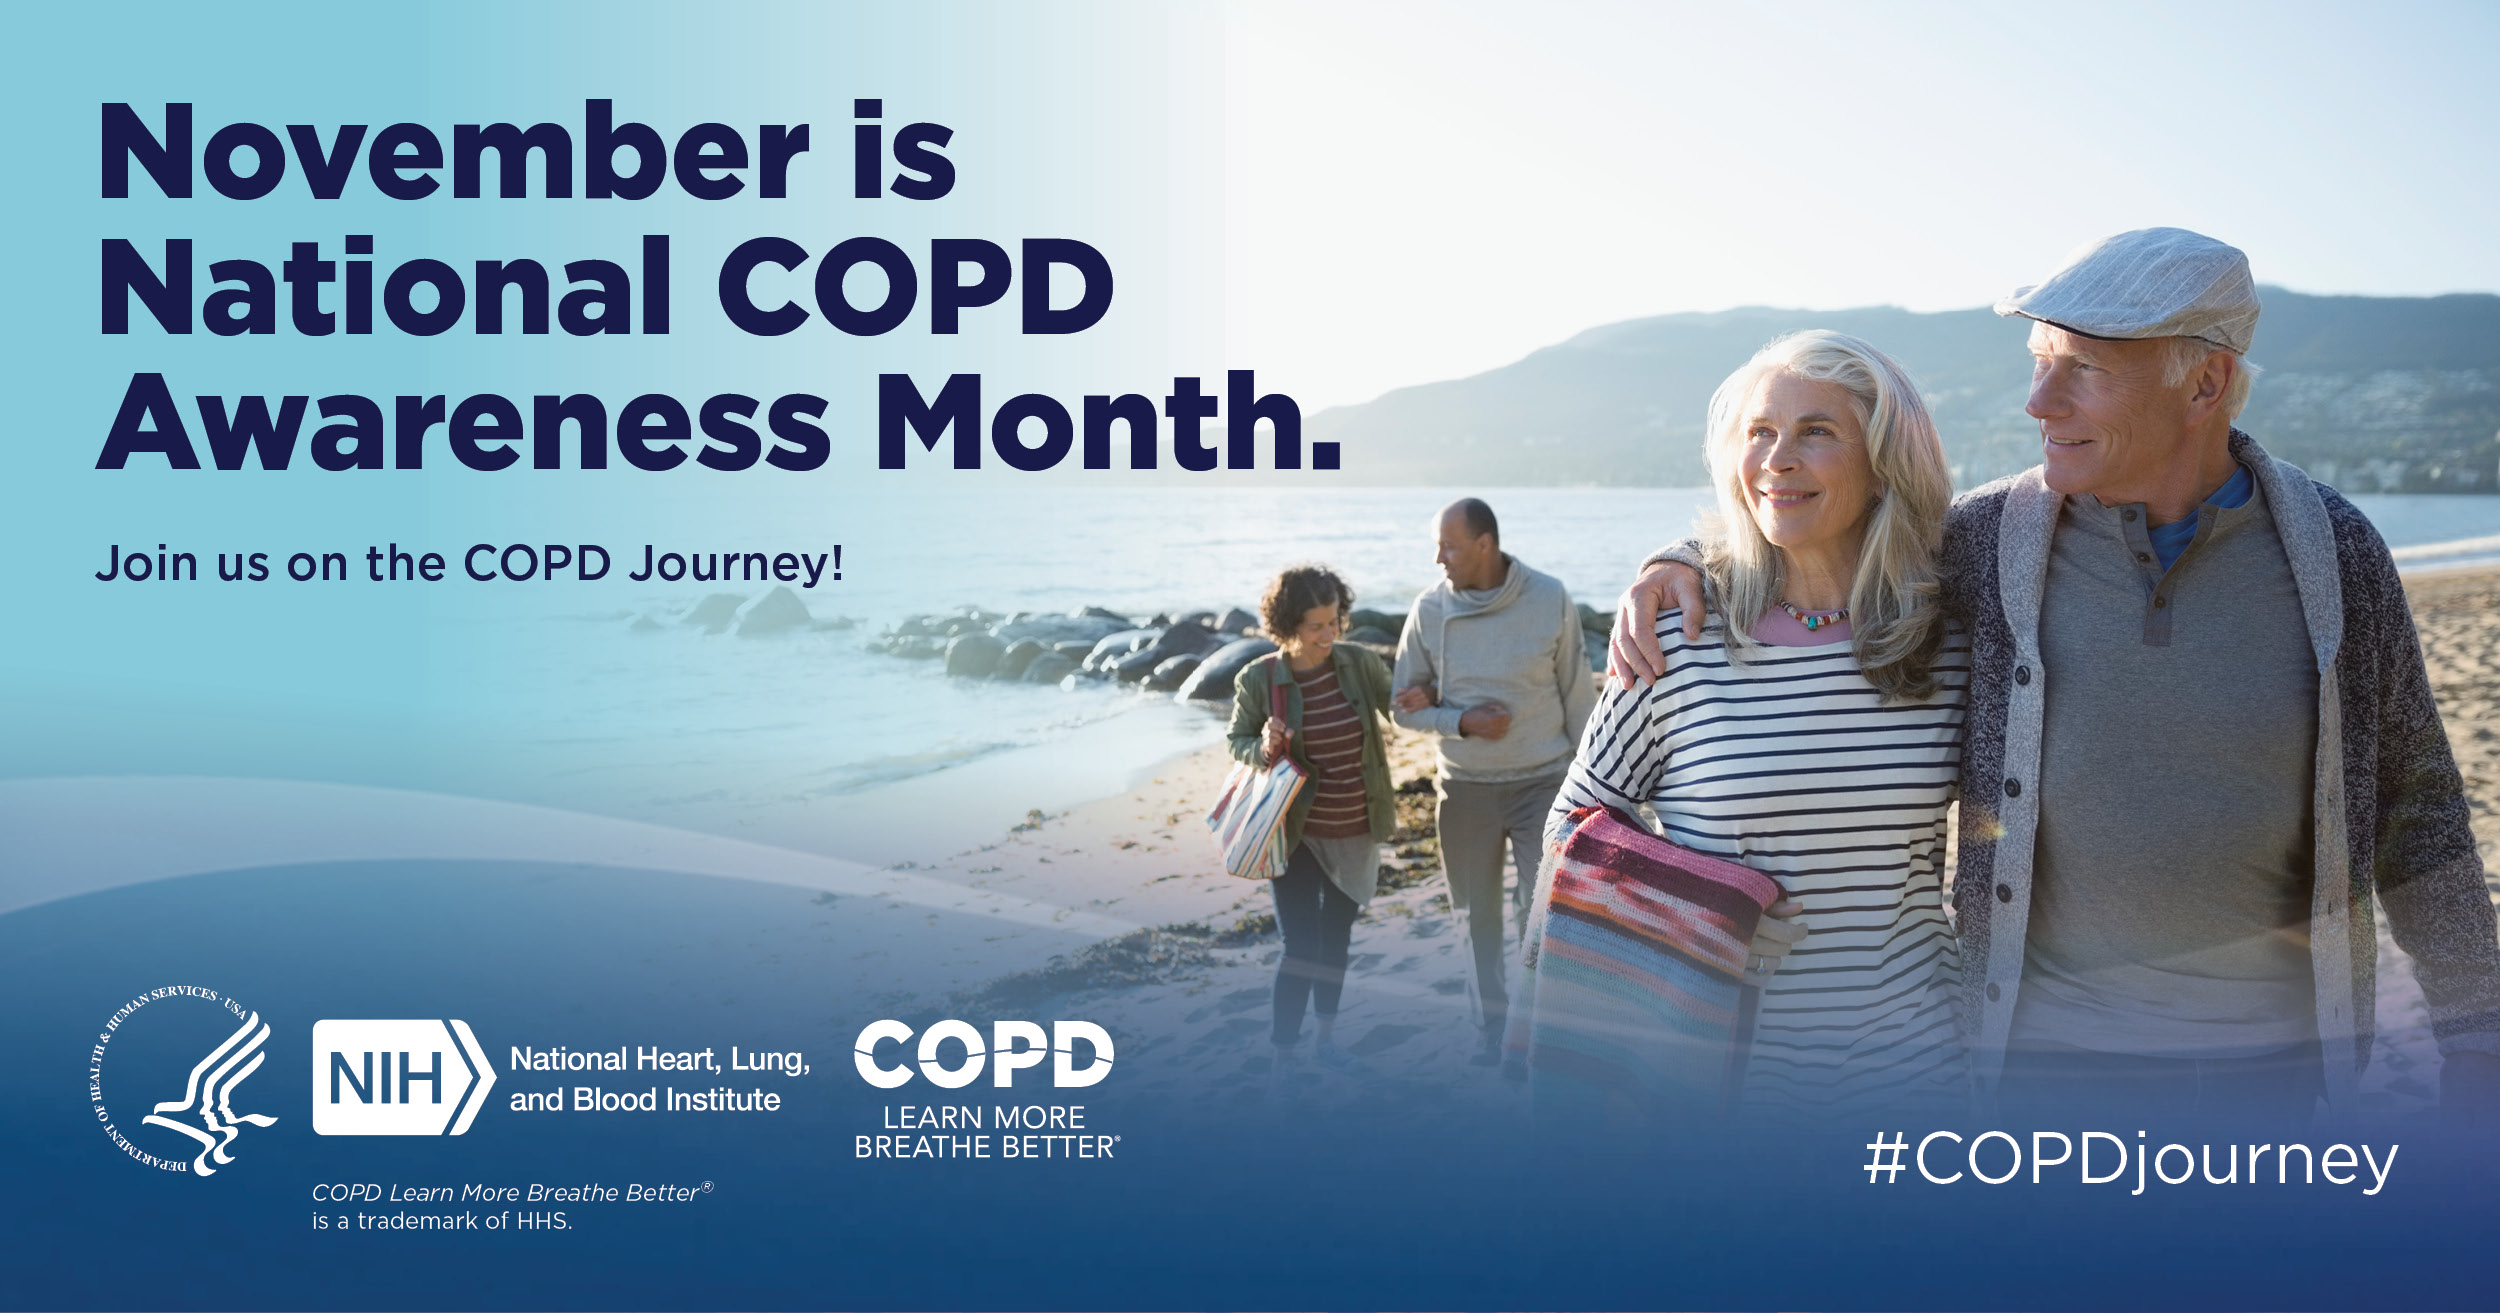 Image with text announcing National COPD Awareness Month. Couples on a beach with message: Image with text announcing National COPD Awareness Month.